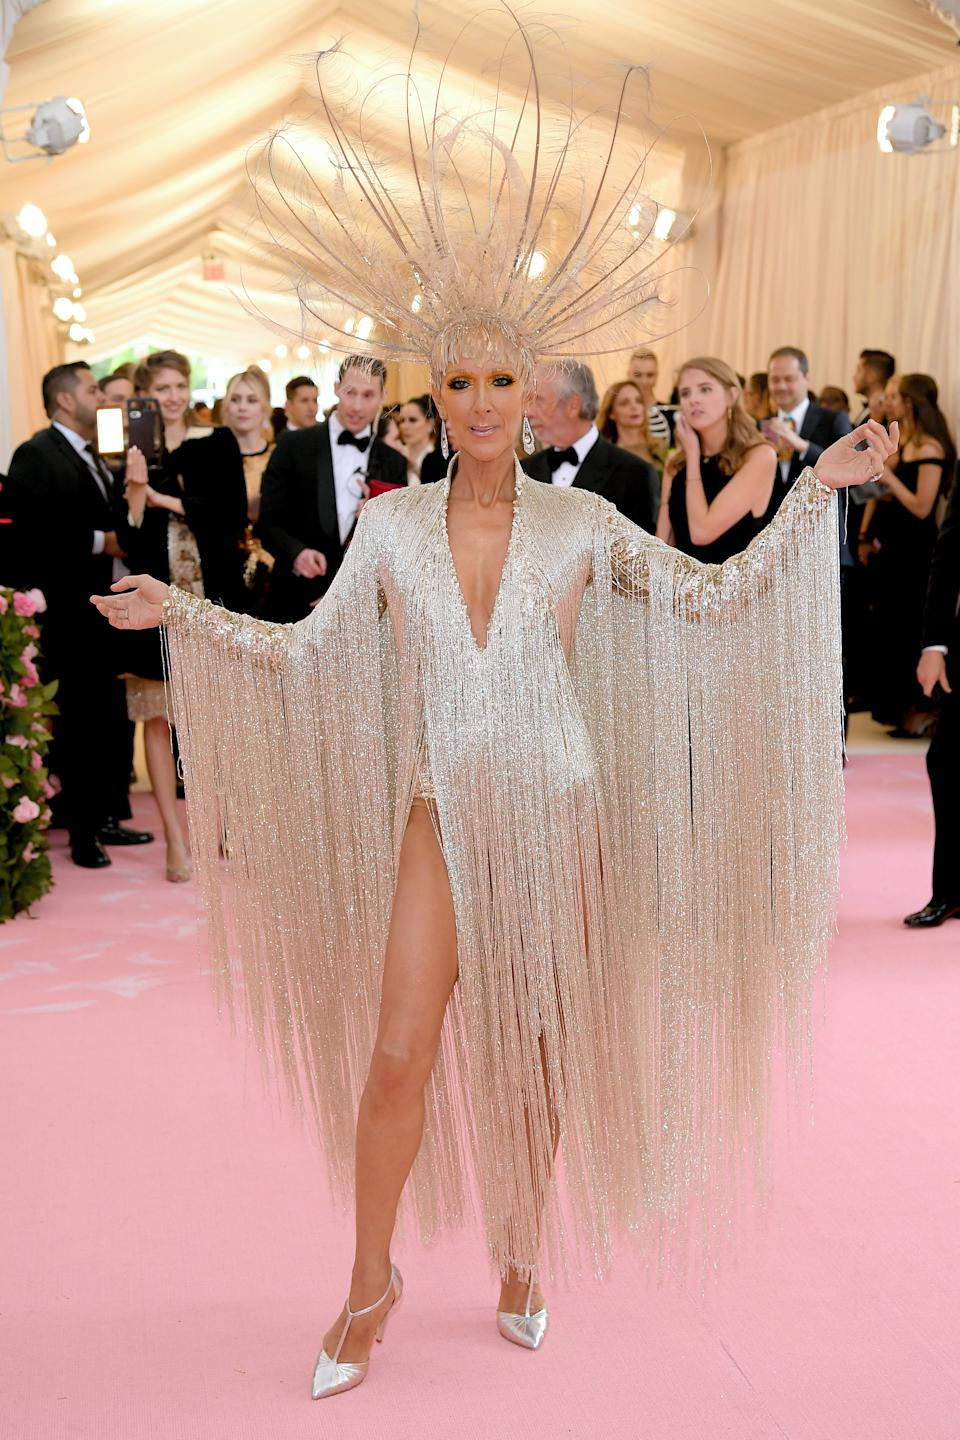 """<h1 class=""""title"""">Céline Dion in Oscar de la Renta and custom Chloe Gosselin shoes wearing Fred Leighton jewelry and a Noel Stewart headpiece</h1><cite class=""""credit"""">Photo: Getty Images</cite>"""